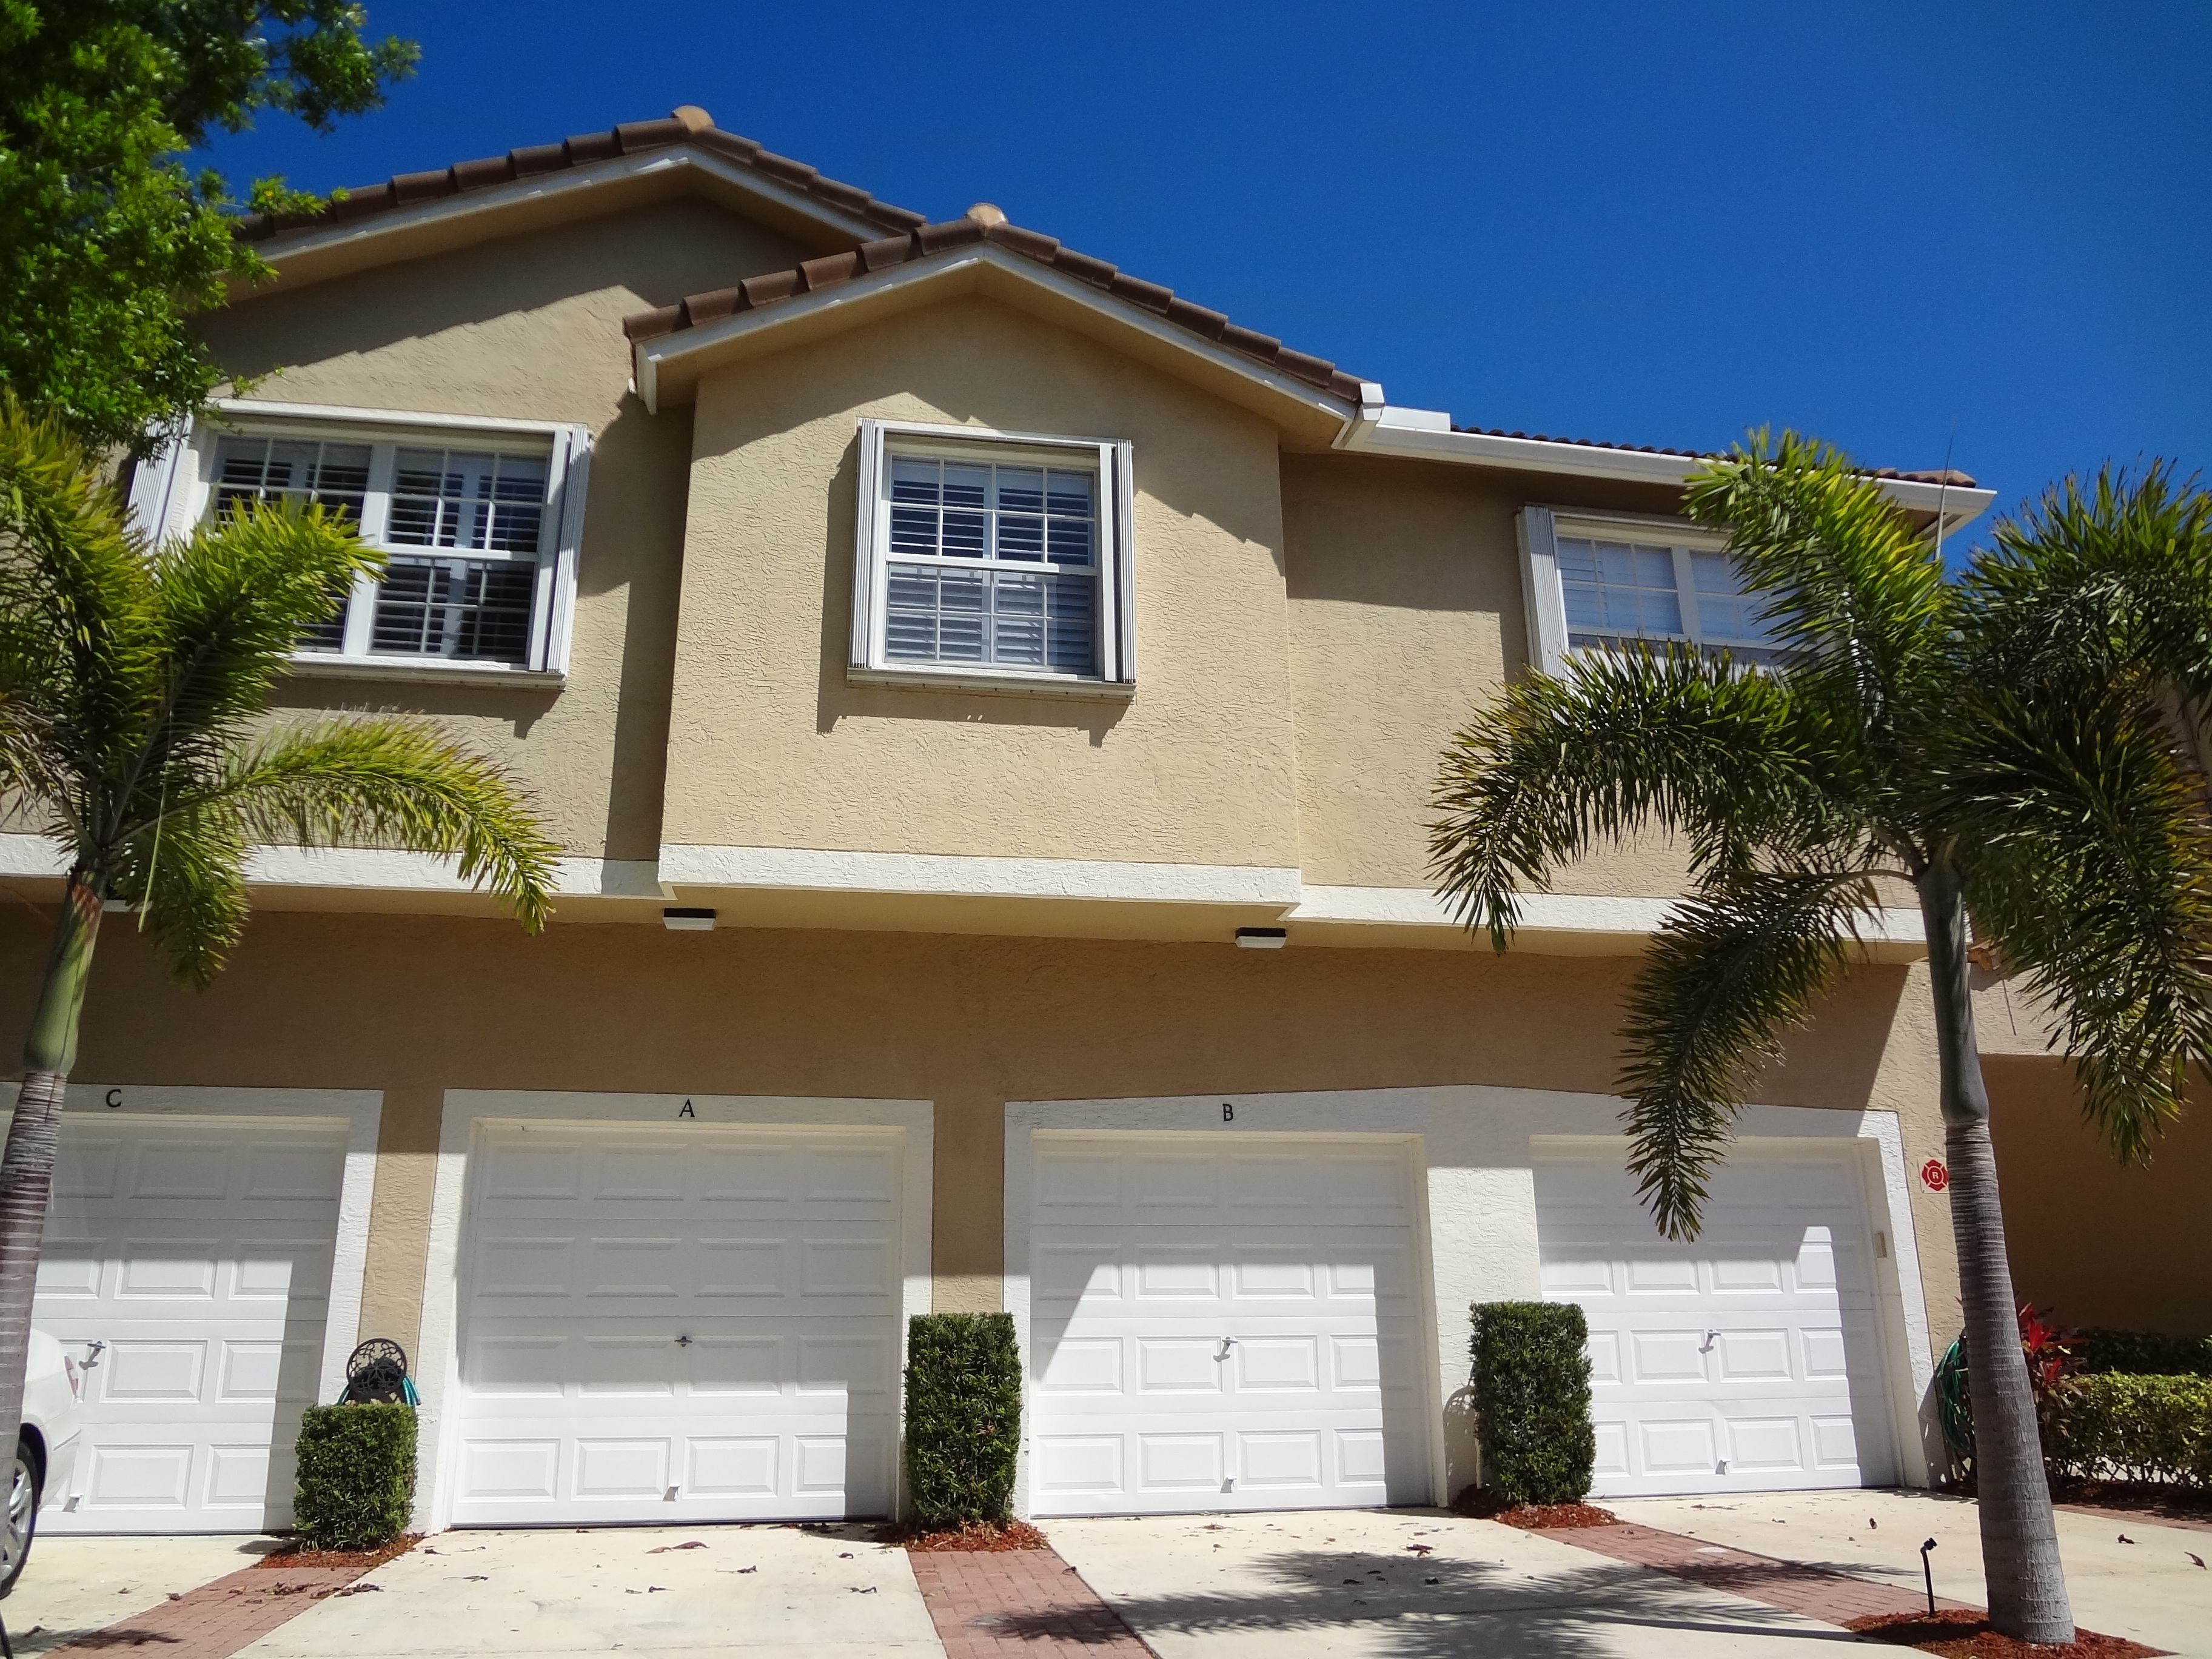 Lighthouse Cove Condos with garages in Tequesta